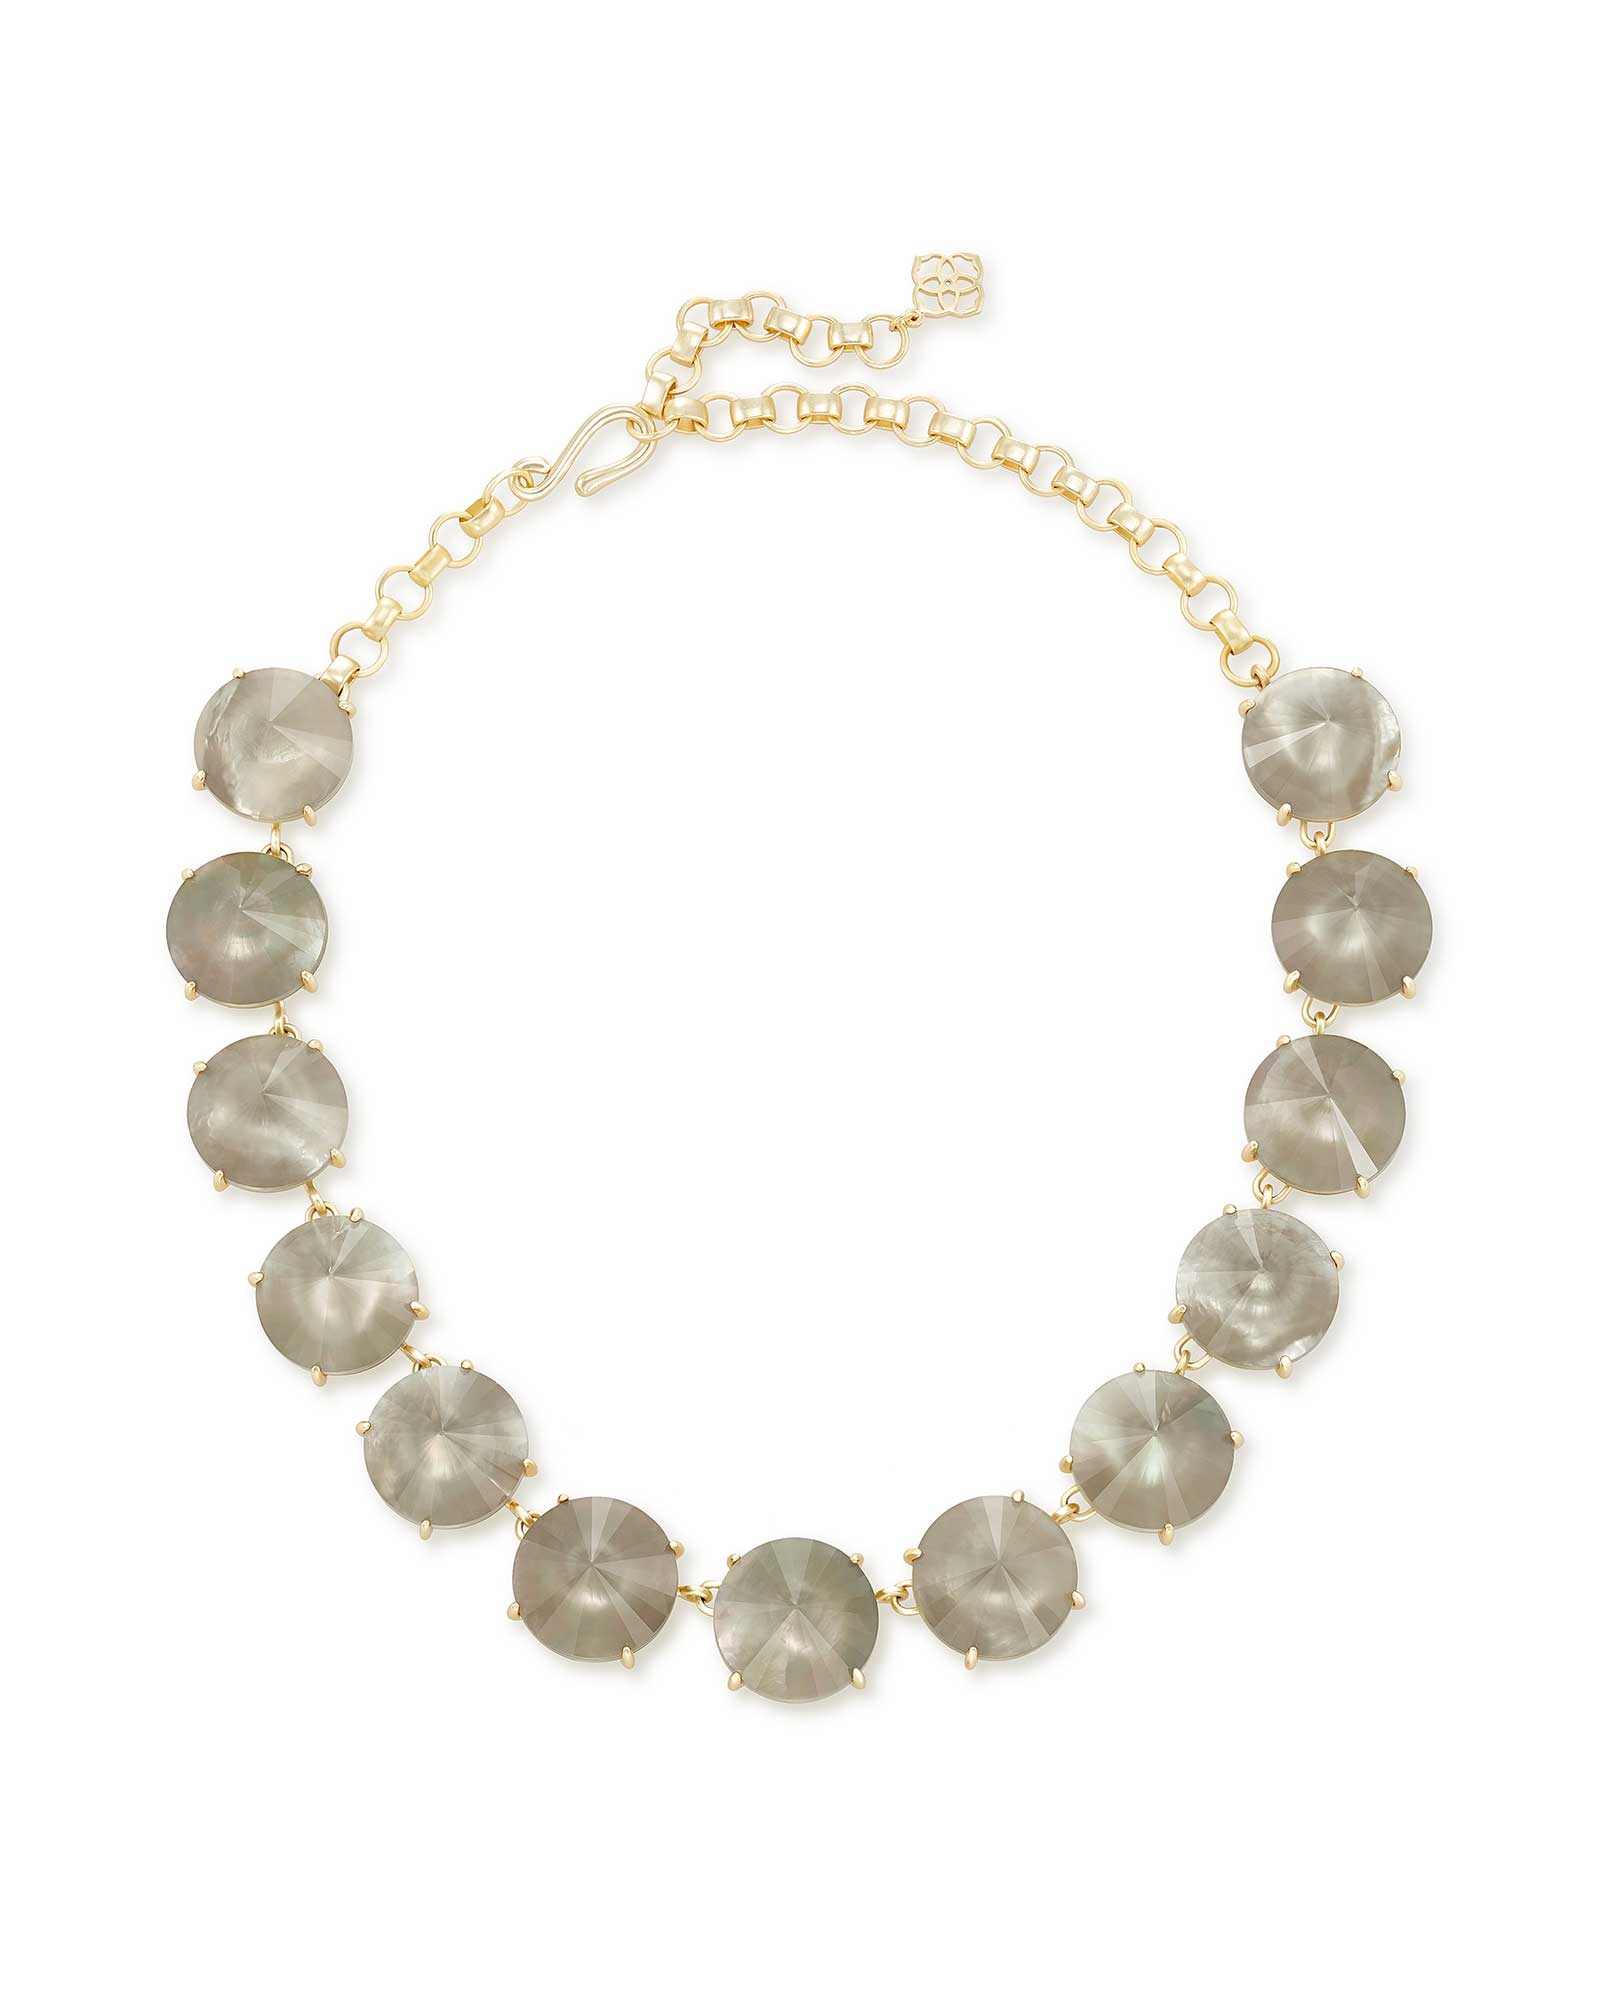 Jolie Gold Statement Necklace in Gray Illusion